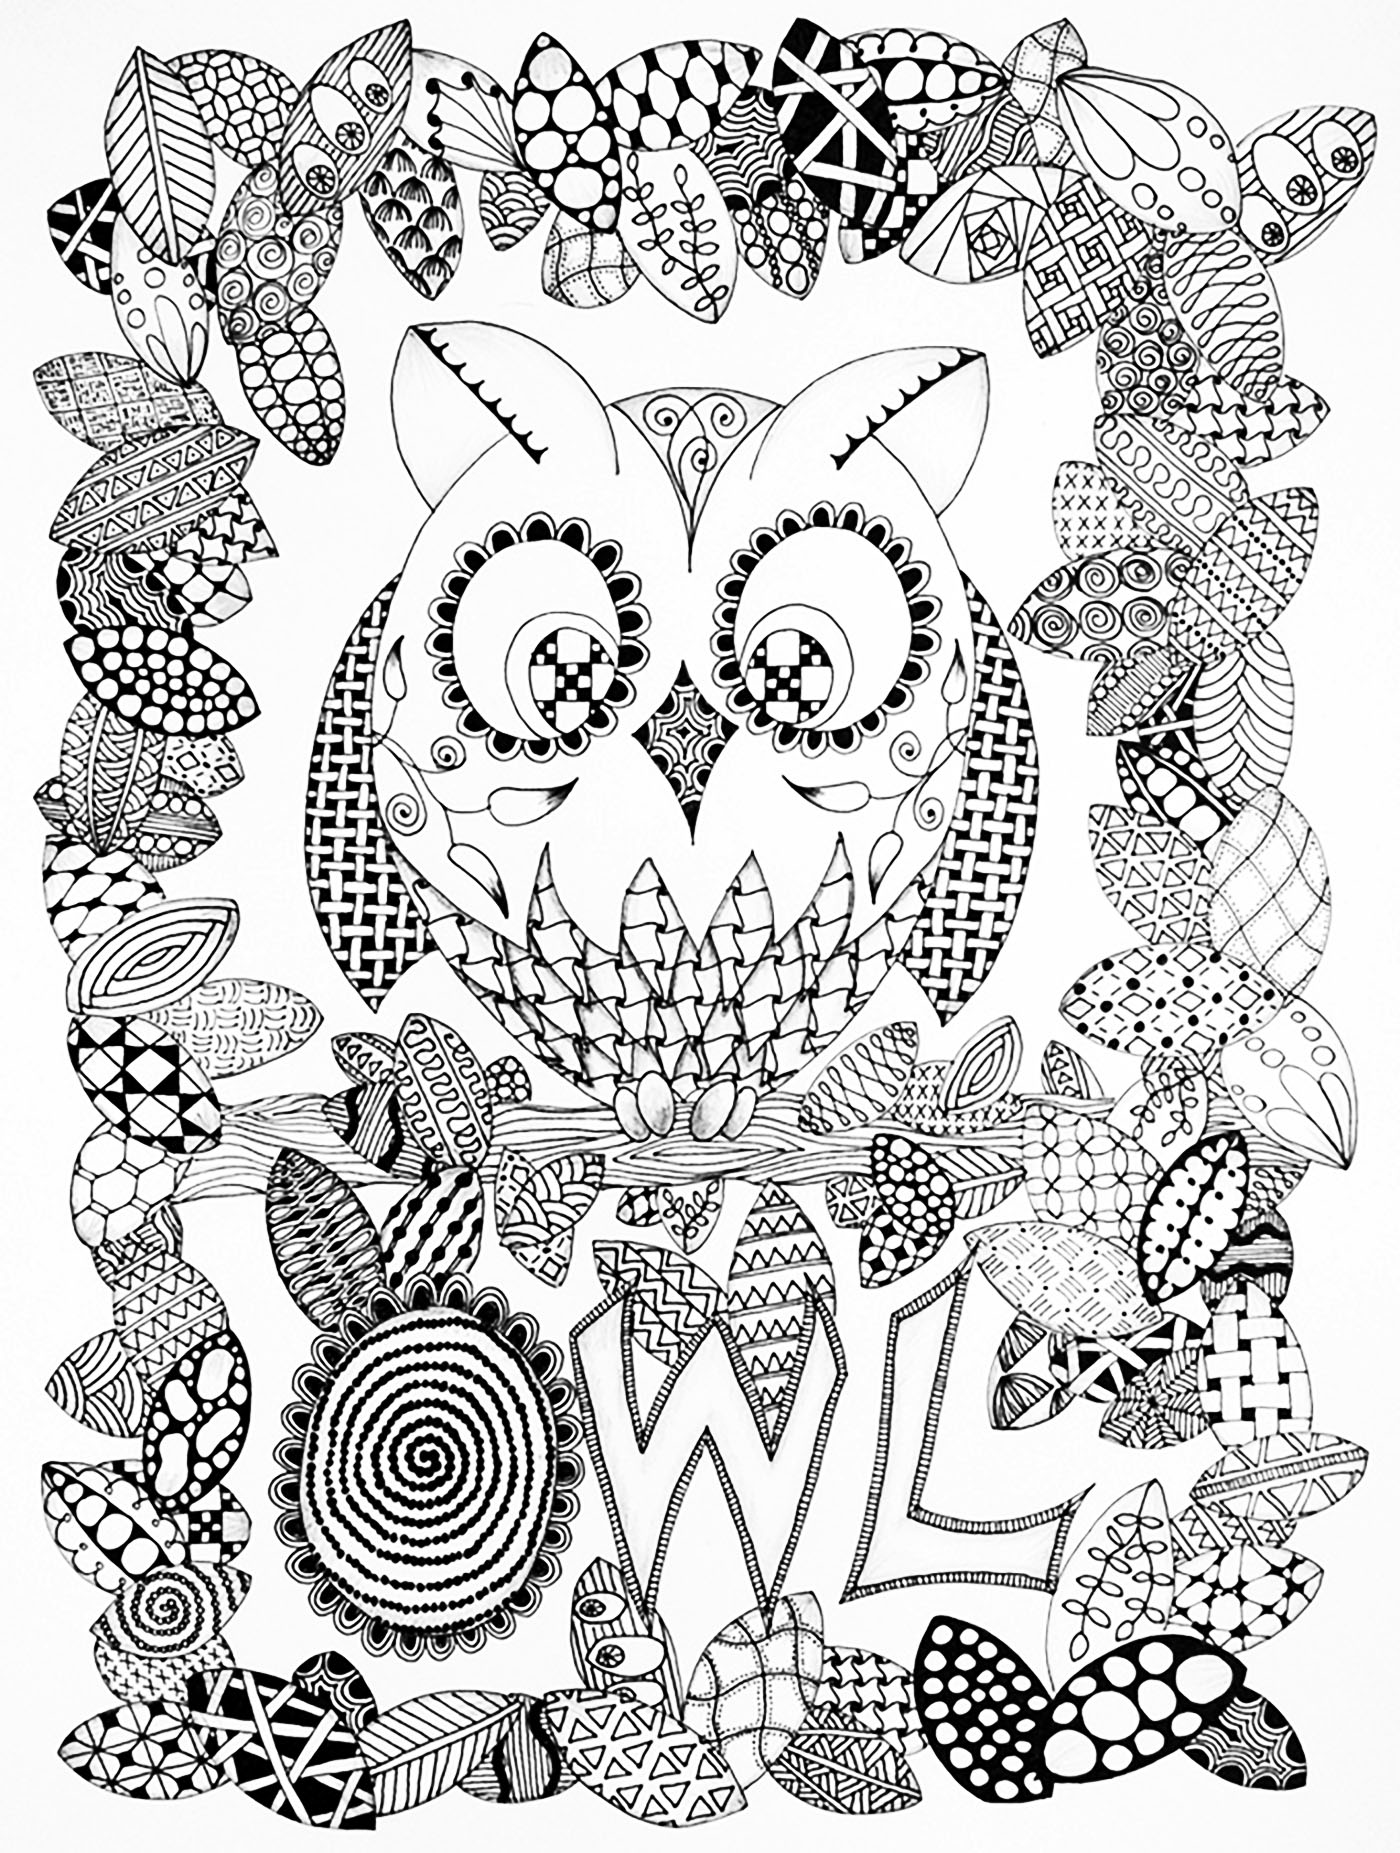 Coloring pages for adults zentangle - Owl Drawing Zentangle Style From The Gallery Events Halloween